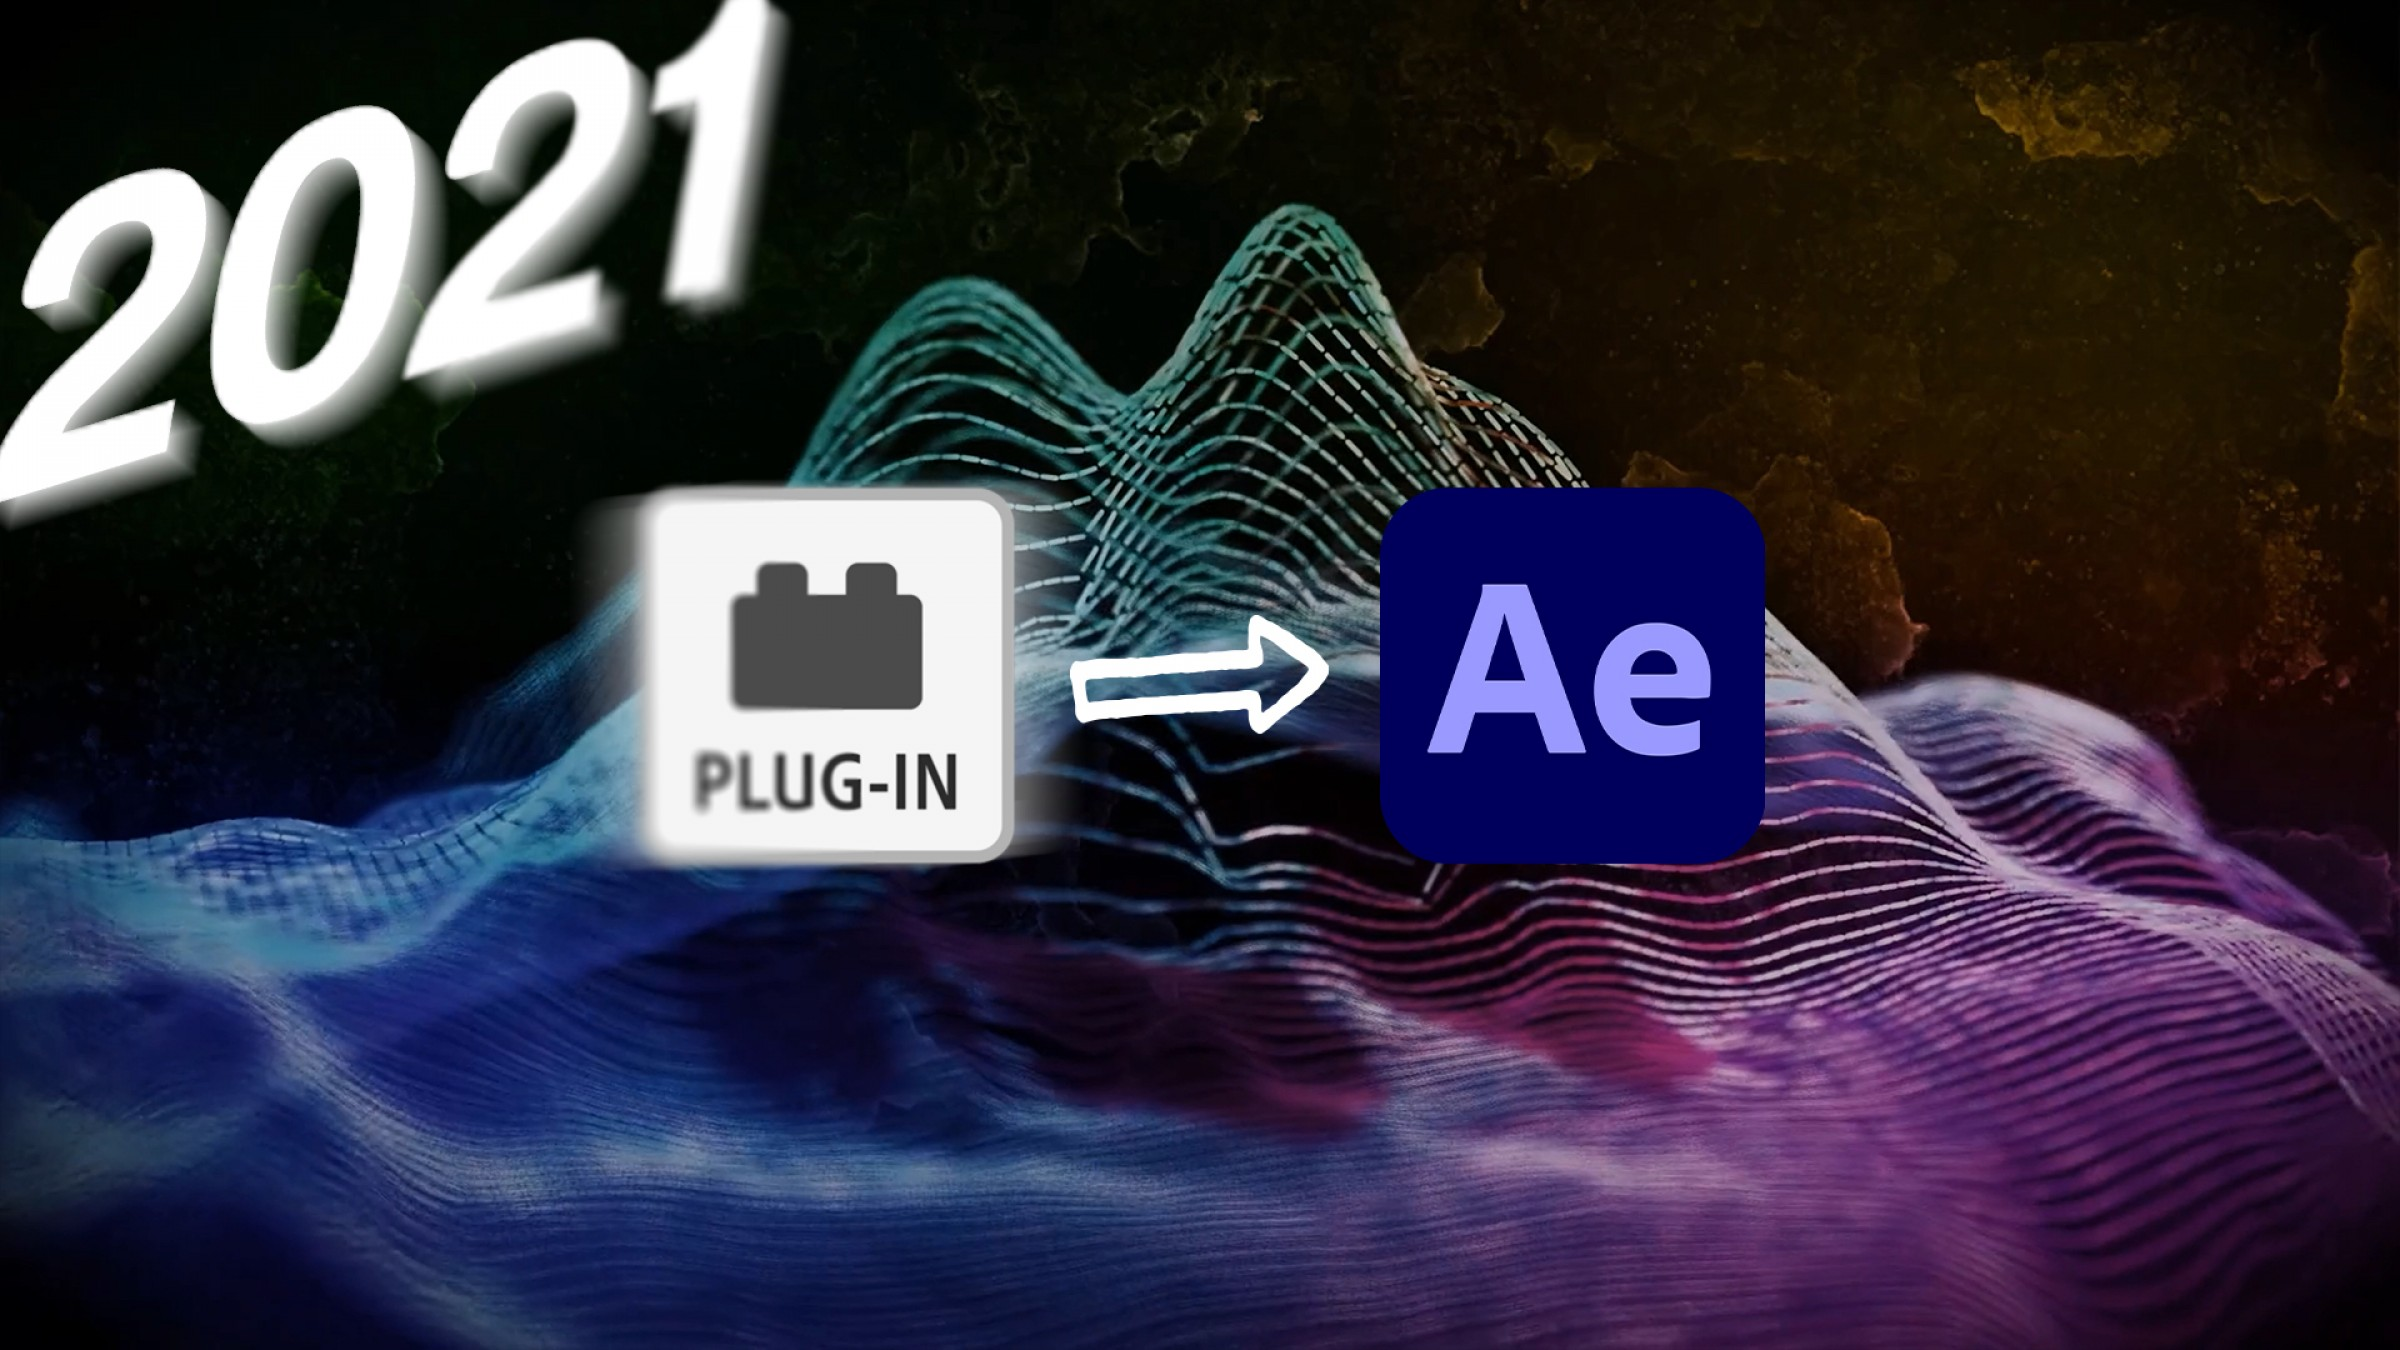 15 Plugins to Add to Your After Effects Arsenal in 2021